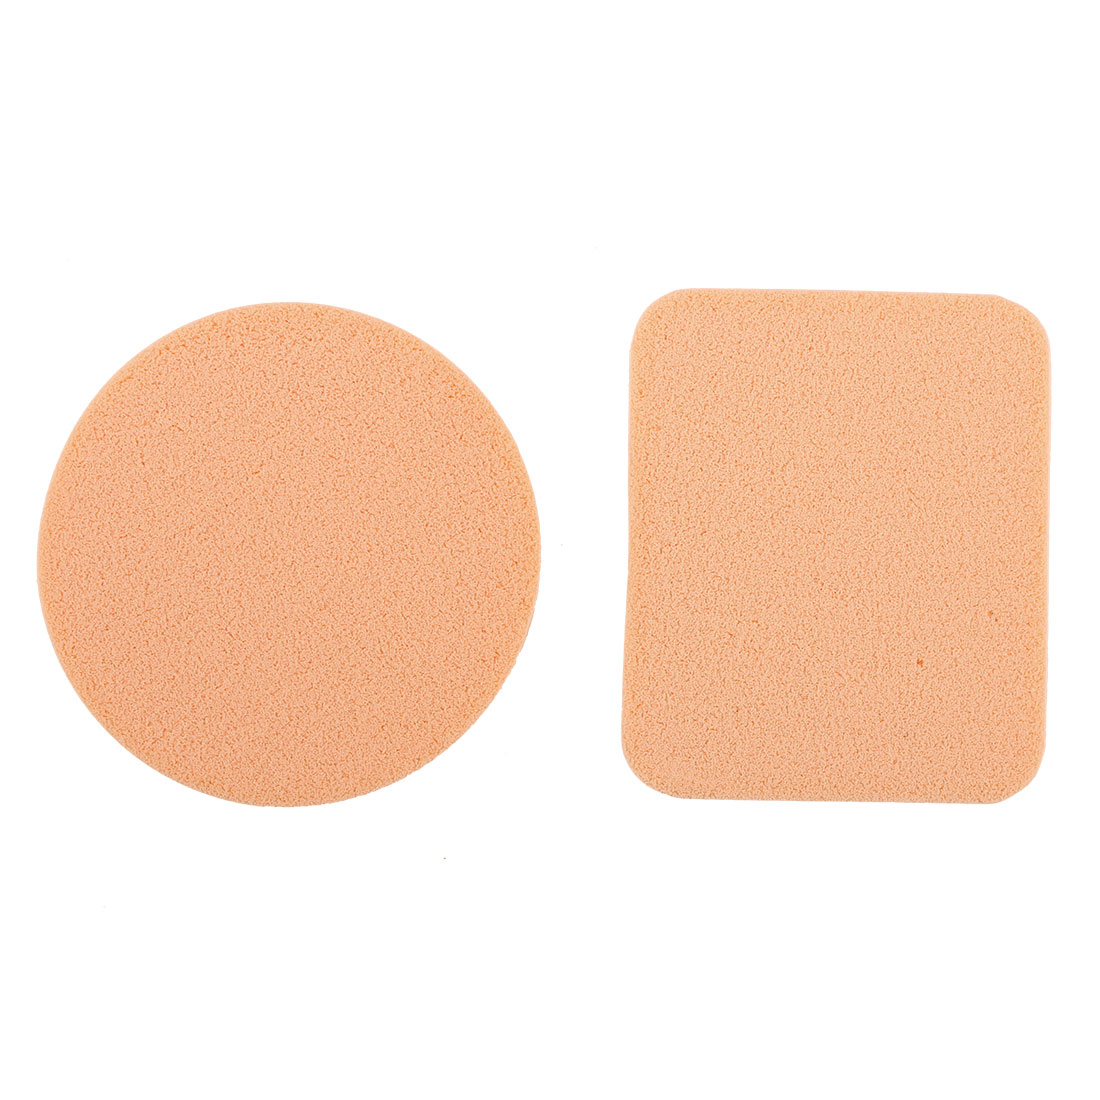 2 in 1 Round Rectangle Shaped Facial Face Sponge Makeup Cosmetic PowderPuff Applicator